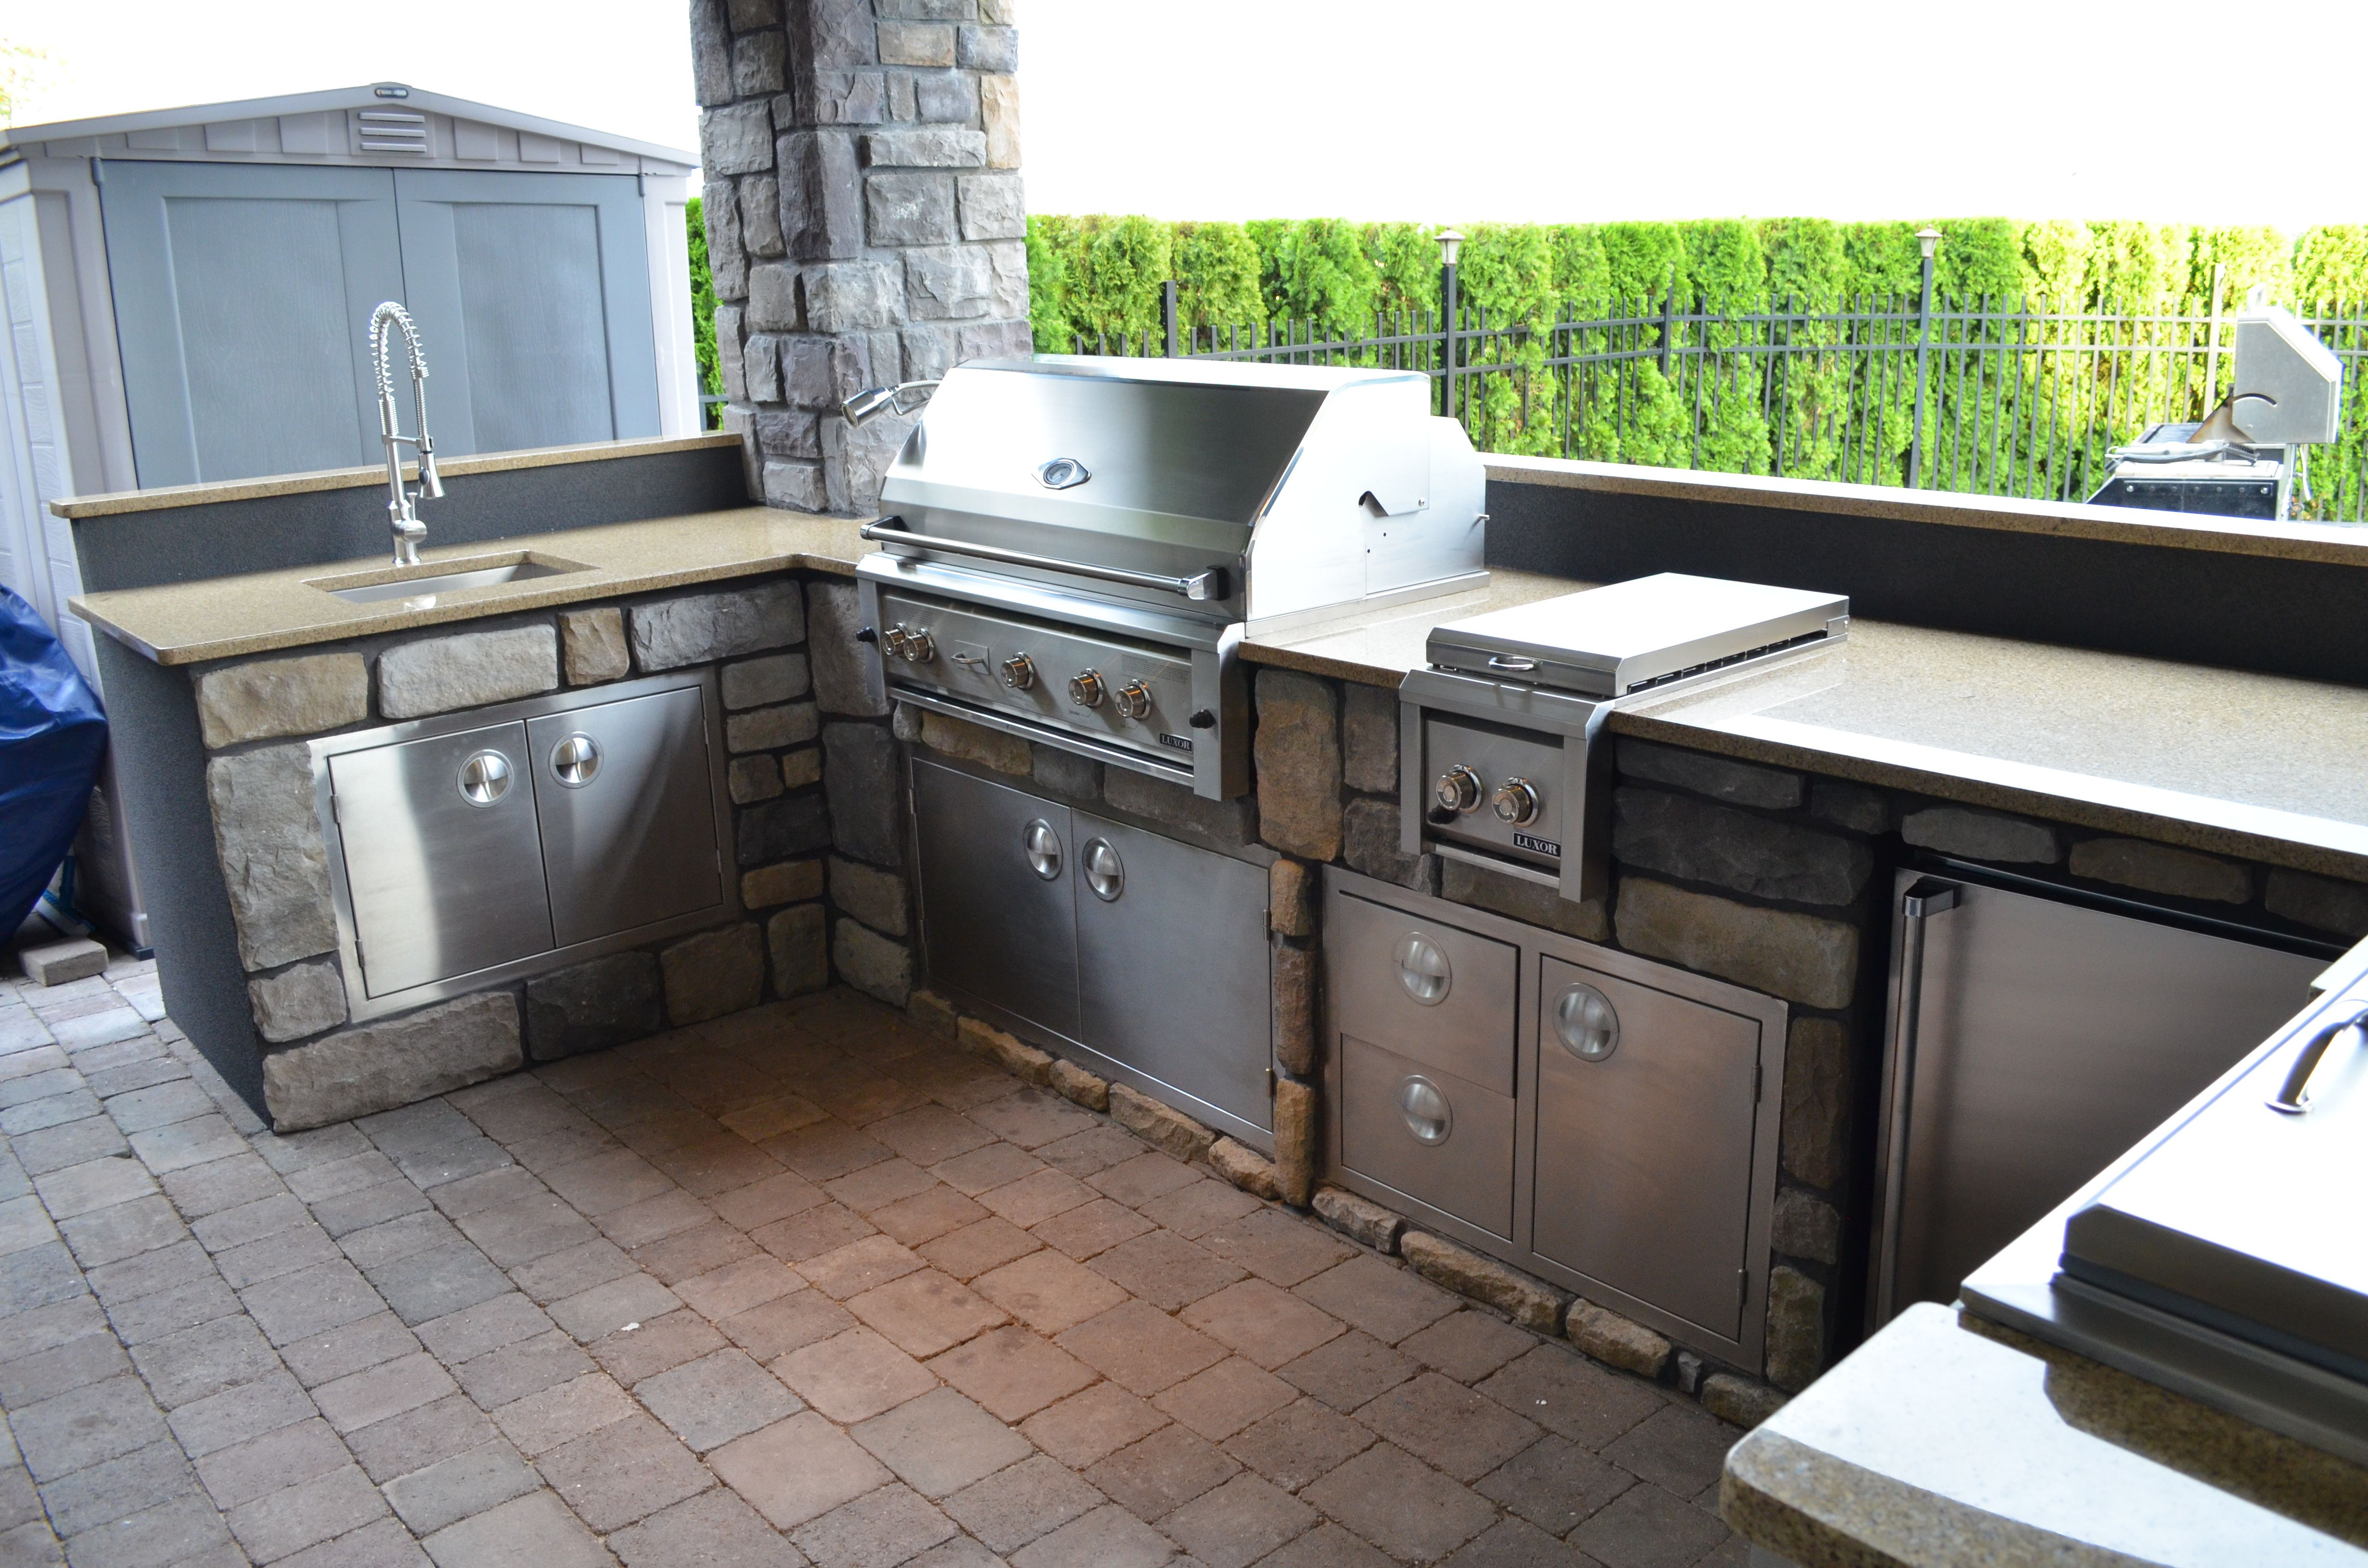 Outdoor Küchengeräte : Luxury outdoor kitchen created by mode concrete in kelowna bc o